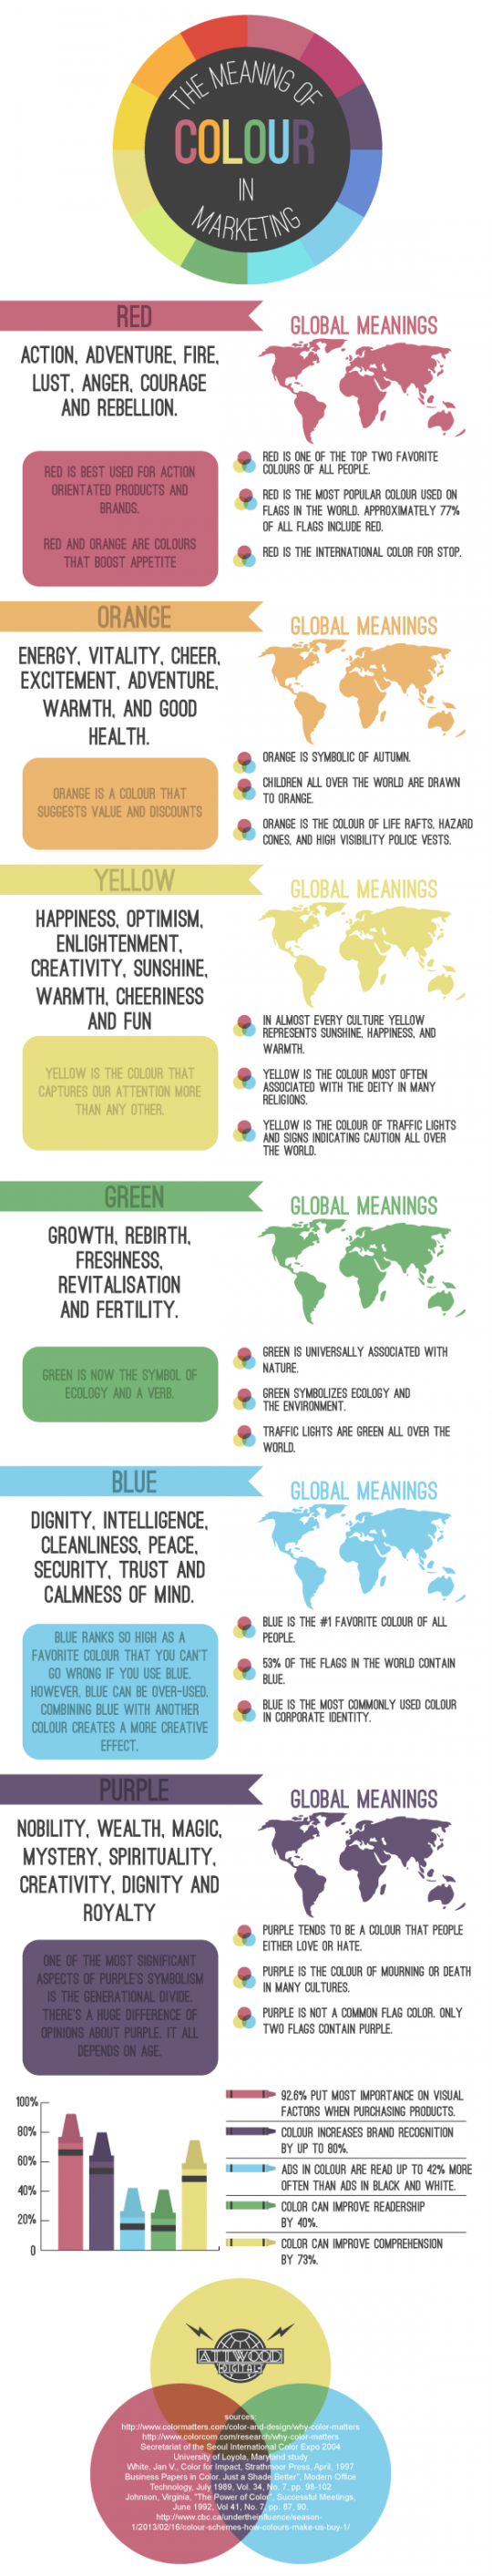 The Meaning Of Colour In Marketing